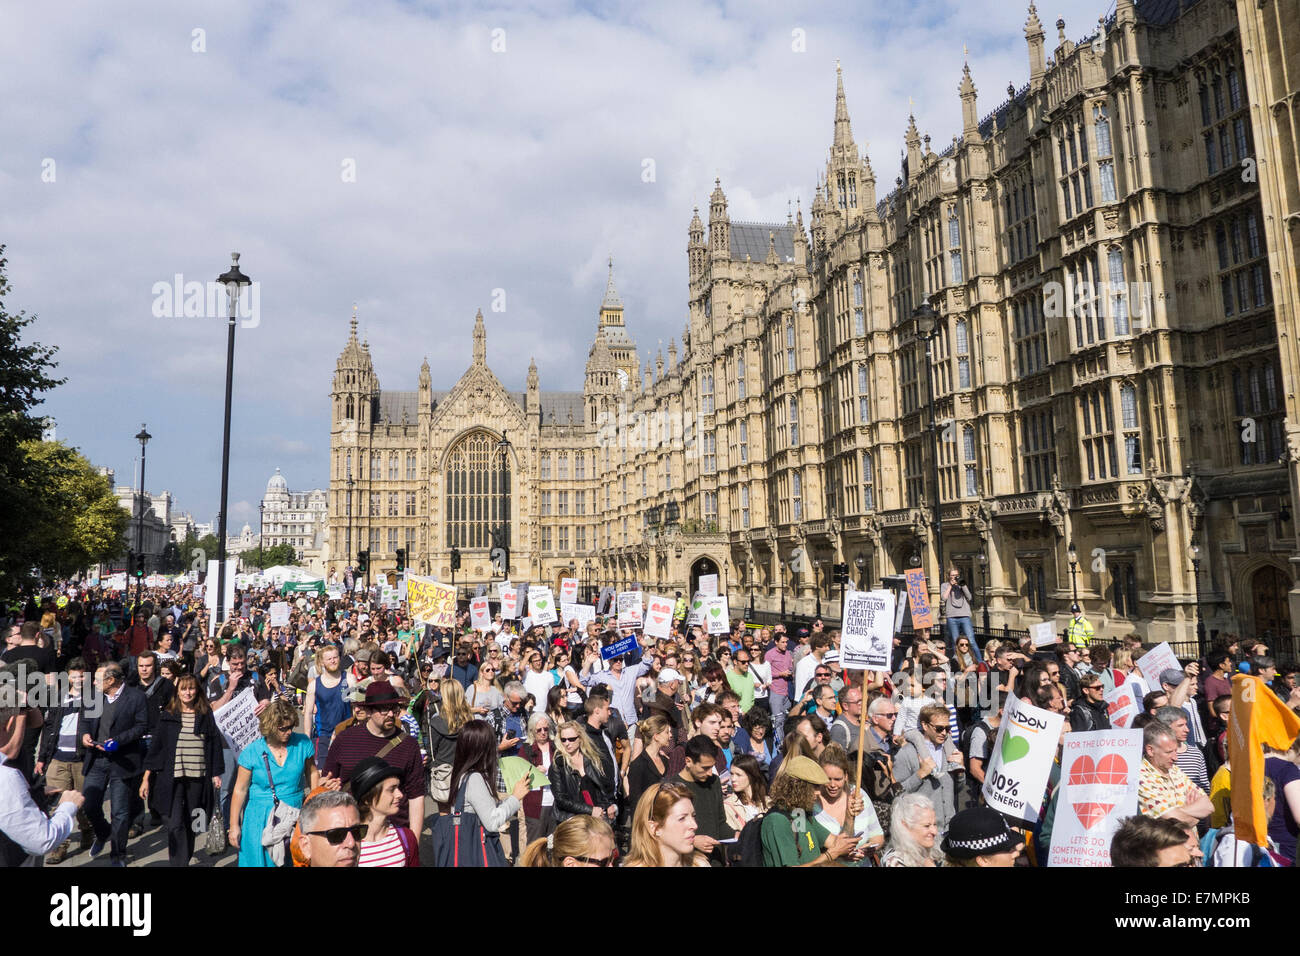 A mass of protesters with placards march in front of the Houses of Parliament during the Climate Change demonstration, - Stock Image